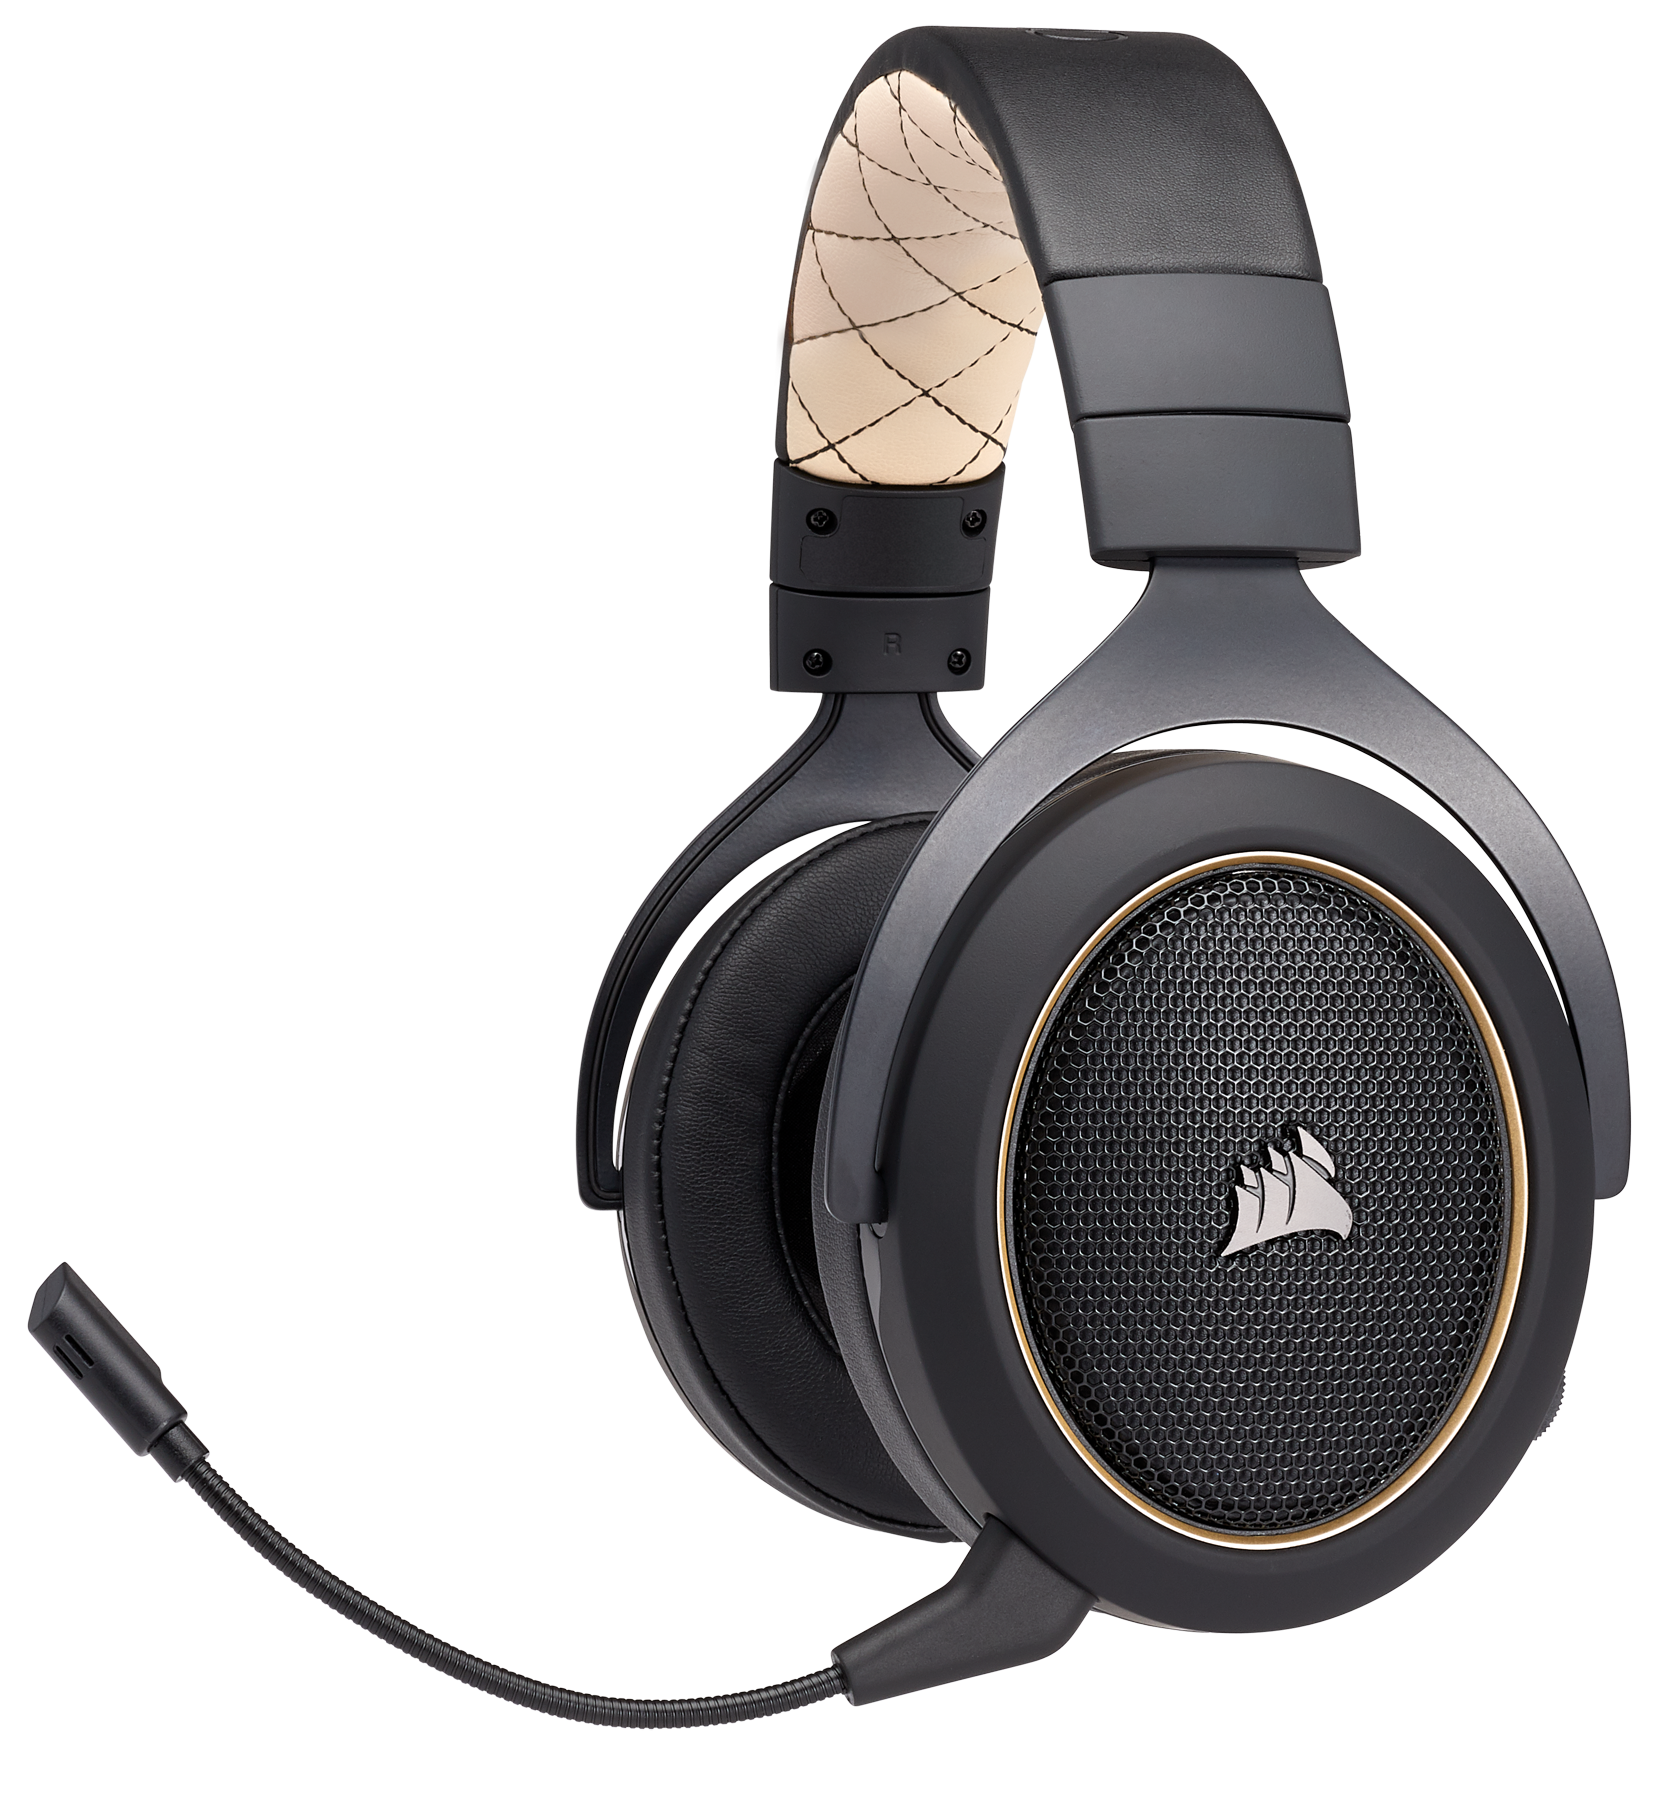 Corsair Hs70 Se Wireless Gaming Headset With 71 Surround Sound Two Simple Relay Based Motorcycle Alarms Media